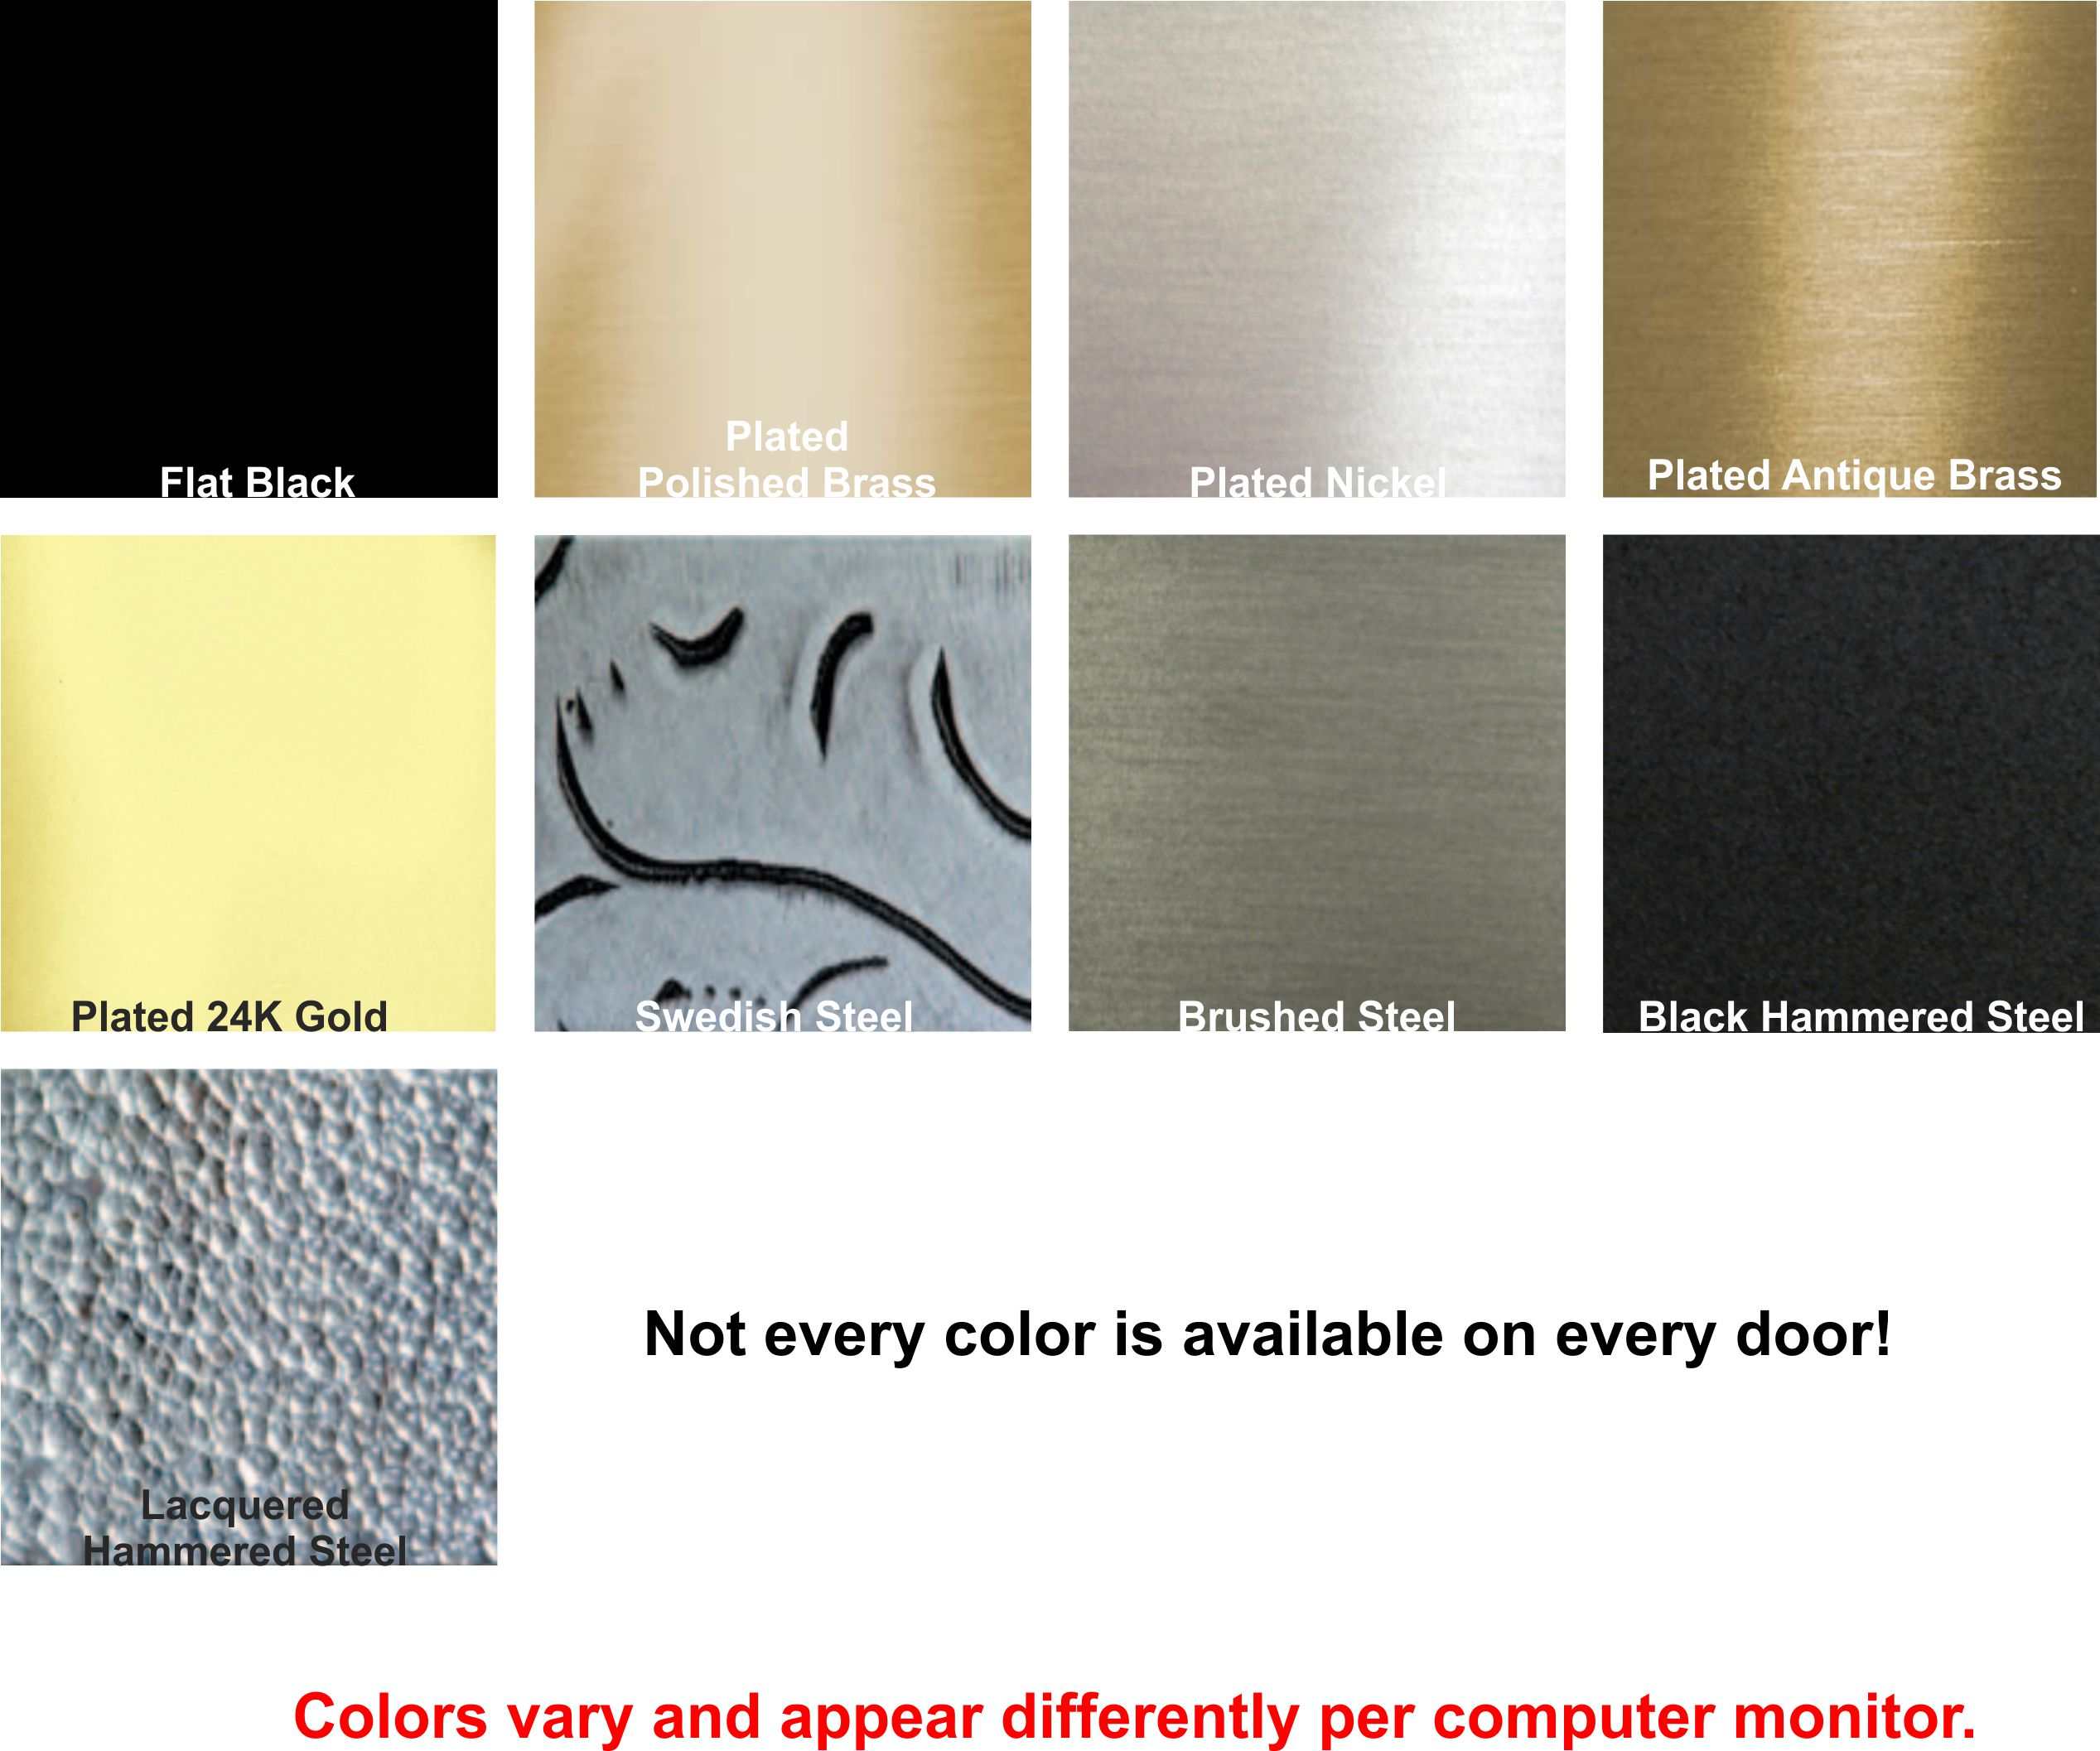 Which finish would you like for the main part of the fireplace door frame?